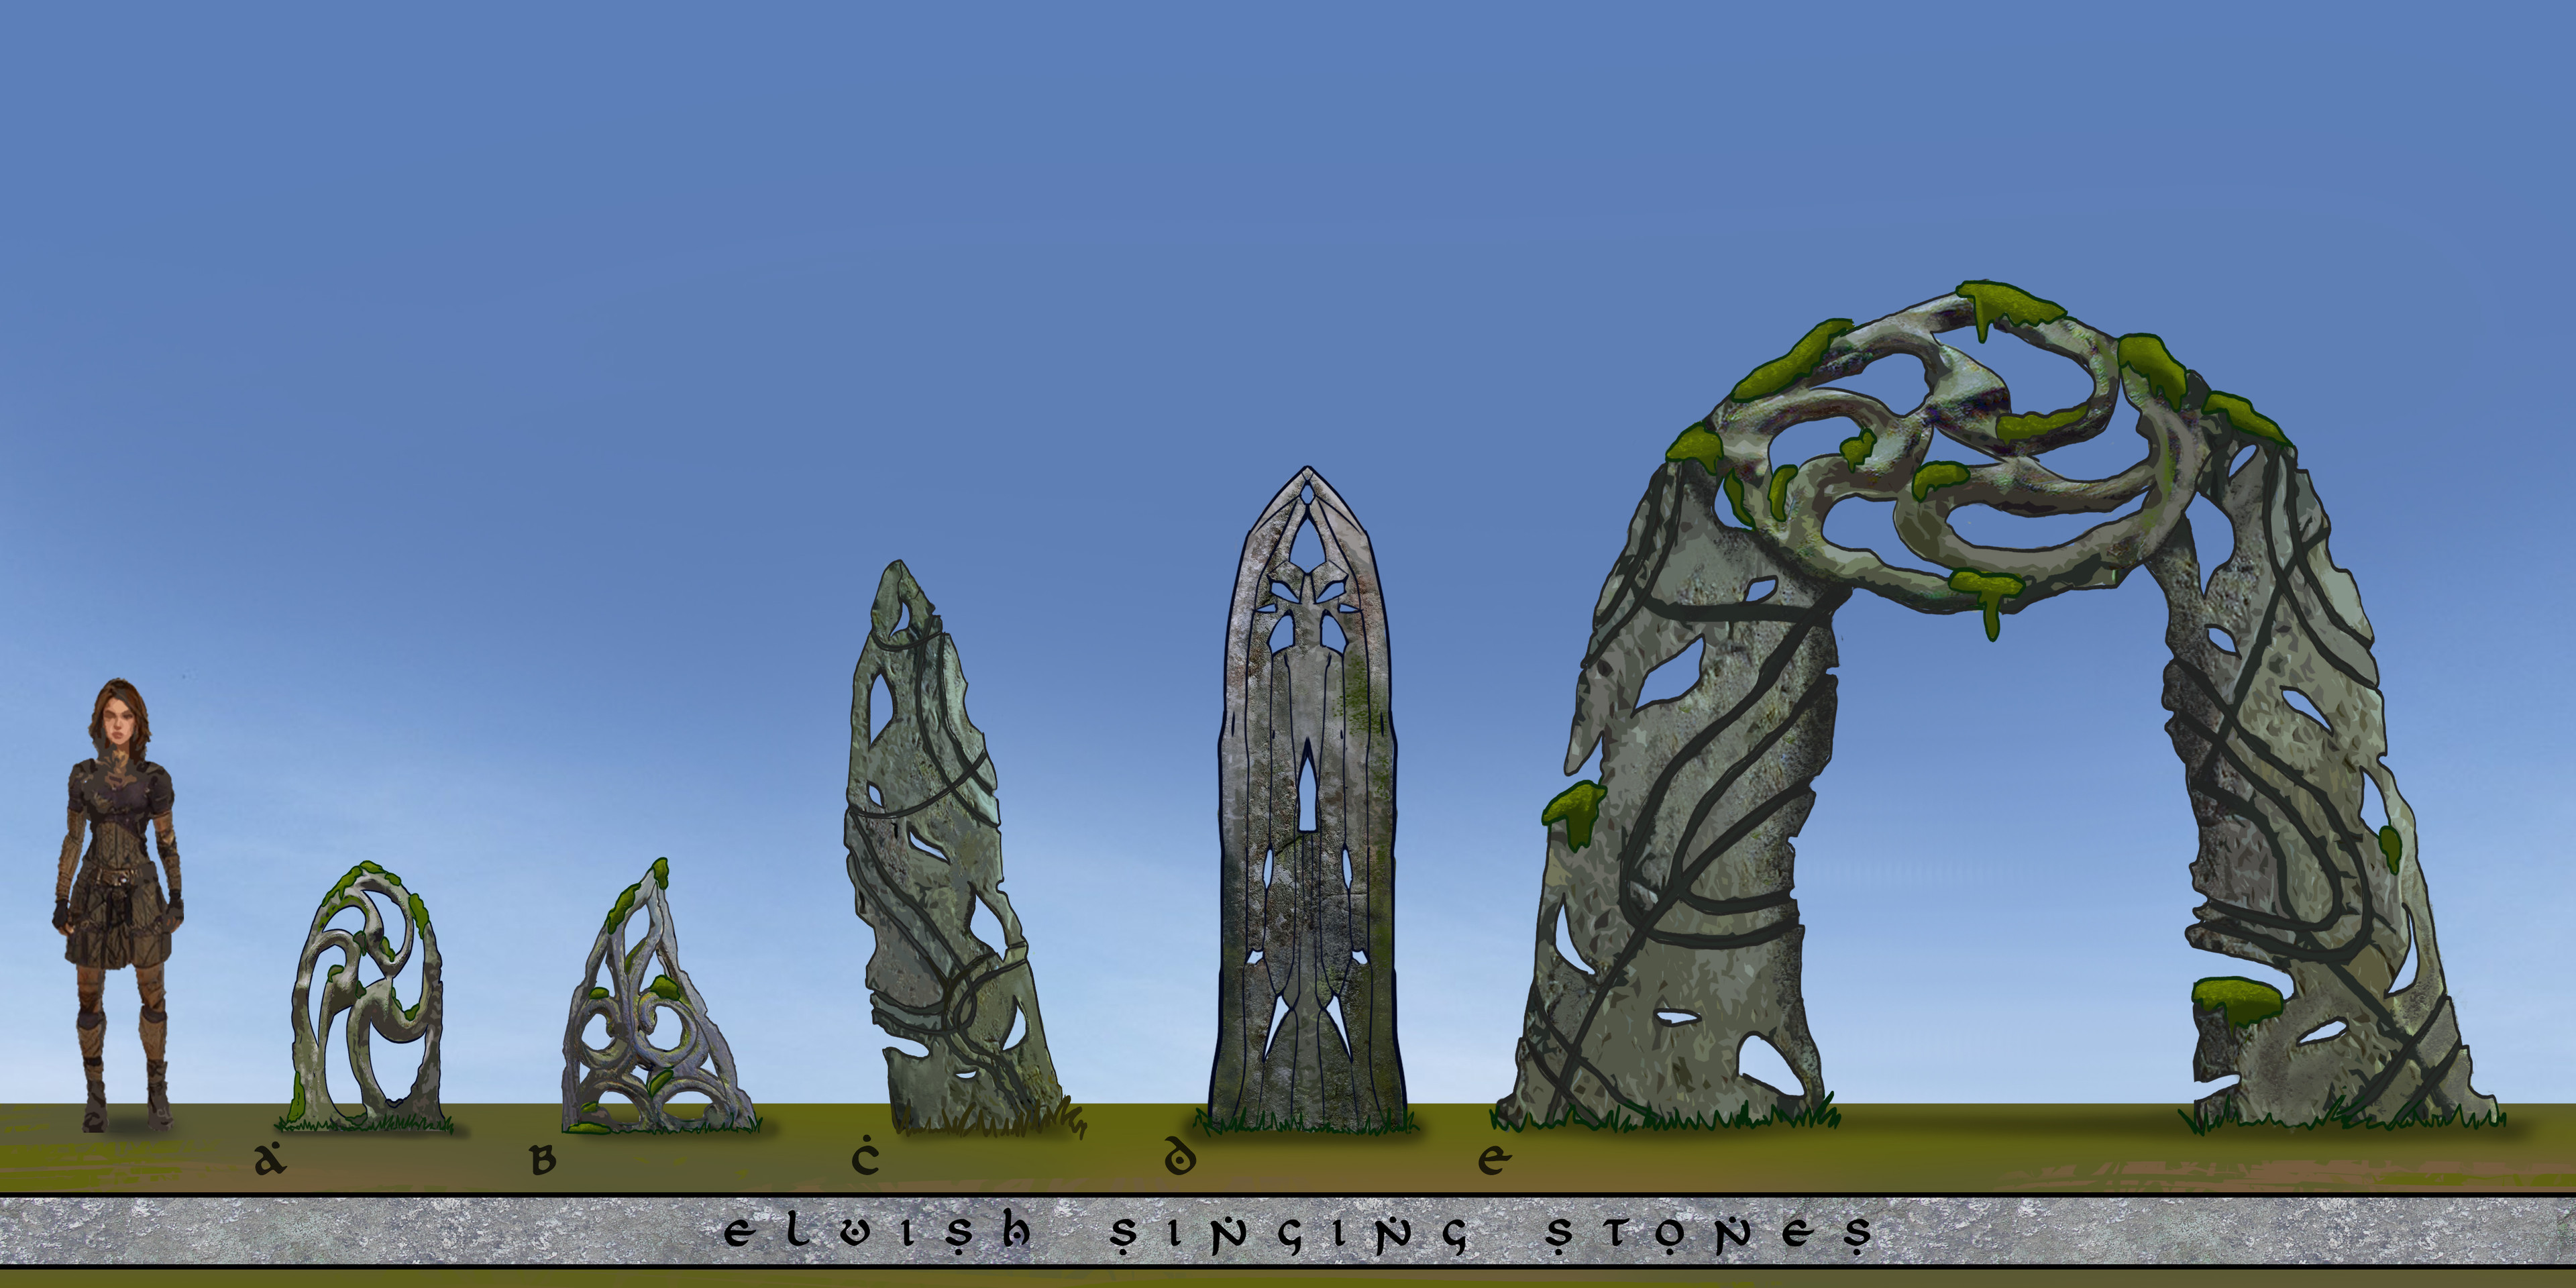 Renders of selected ideas to showcase the scale and materials of the stones.